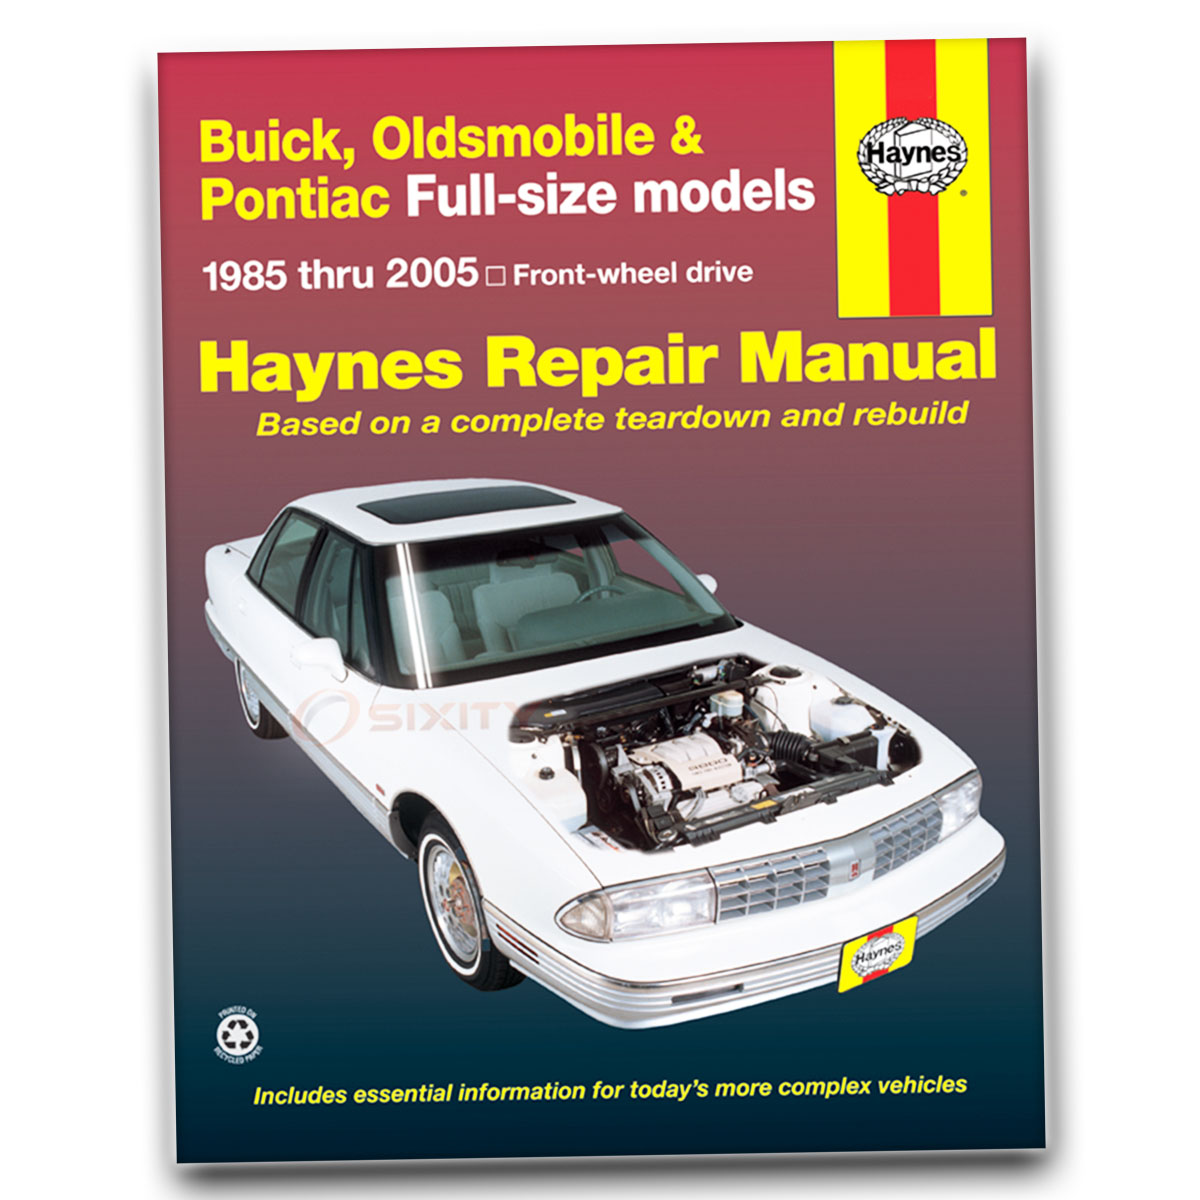 Haynes Repair Manual for Buick LeSabre Base T-Type Limited Custom Estate qr